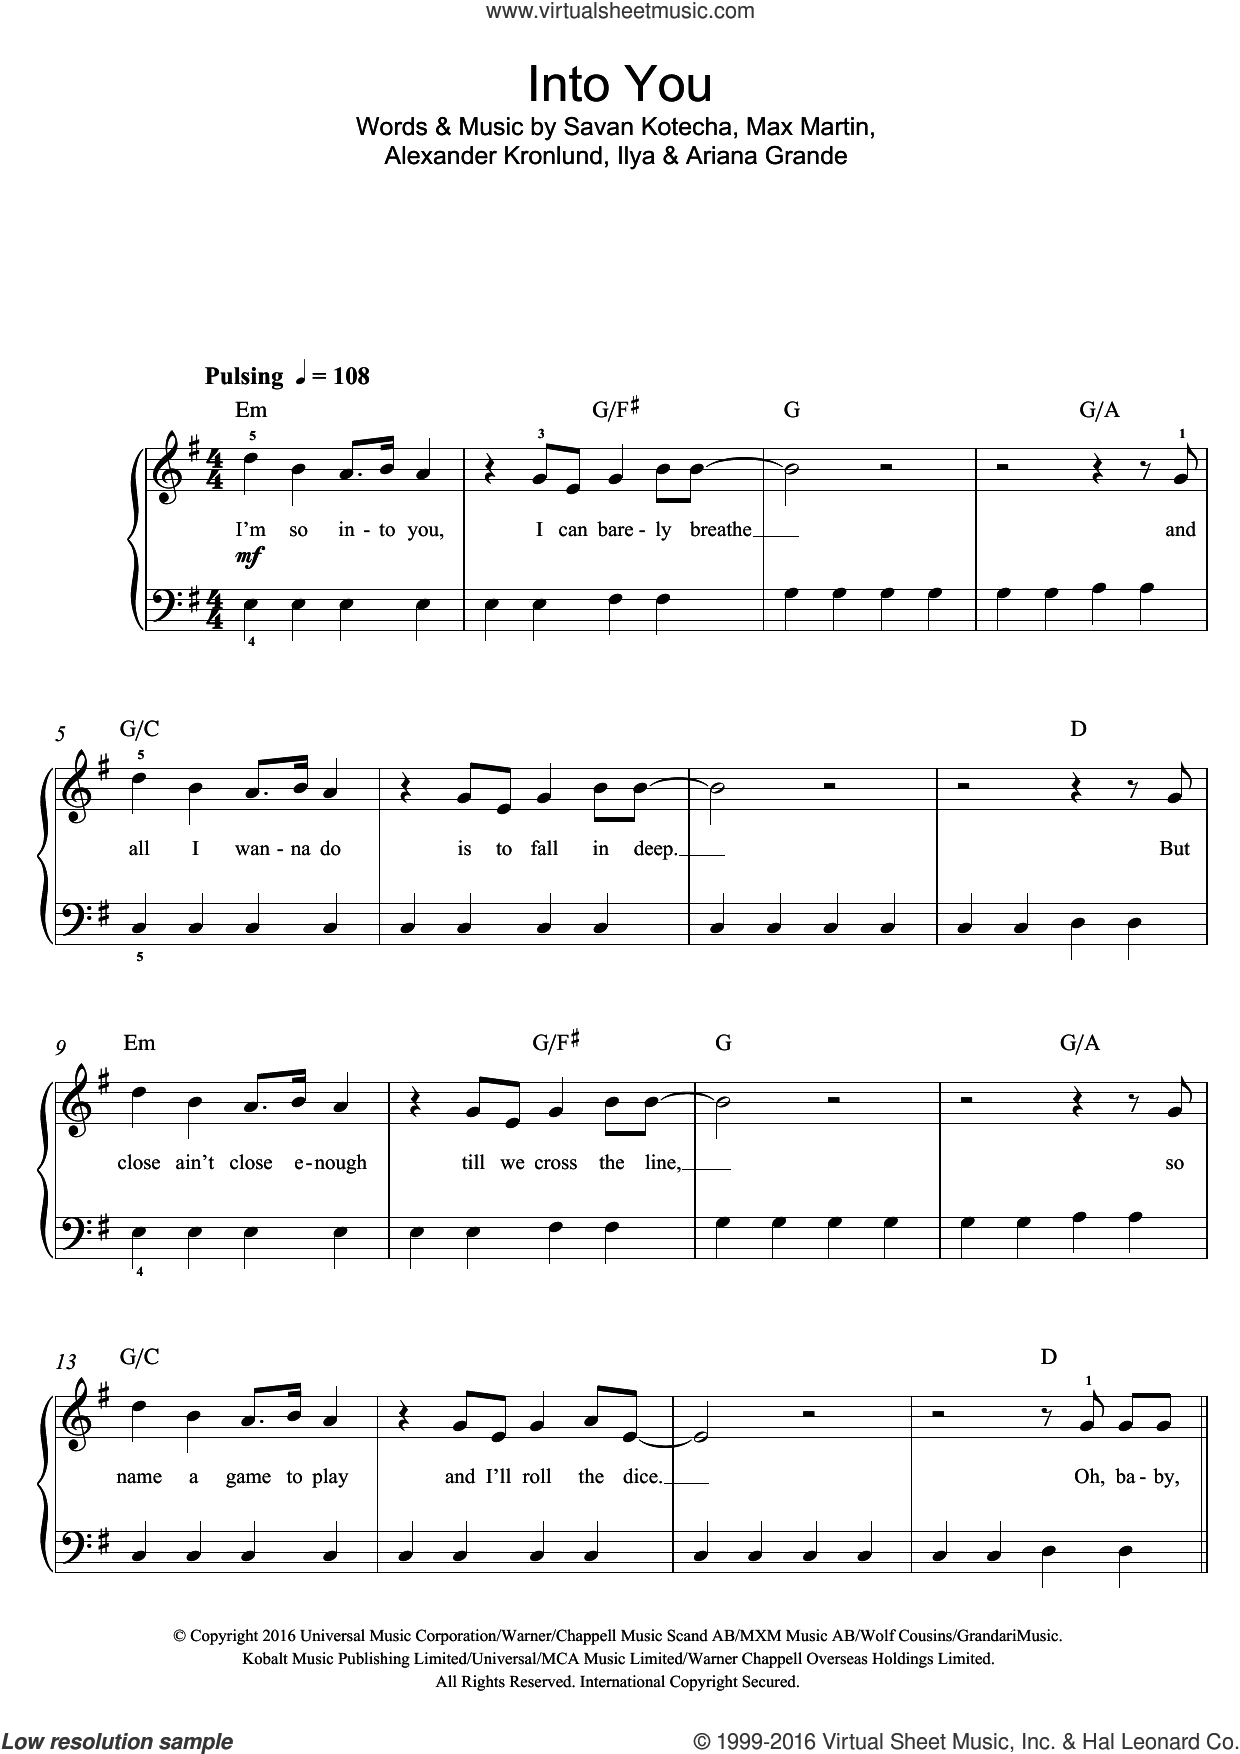 Into You sheet music for voice, piano or guitar by Savan Kotecha, Alexander Kronlund, Ariana Grande, Ilya and Max Martin. Score Image Preview.